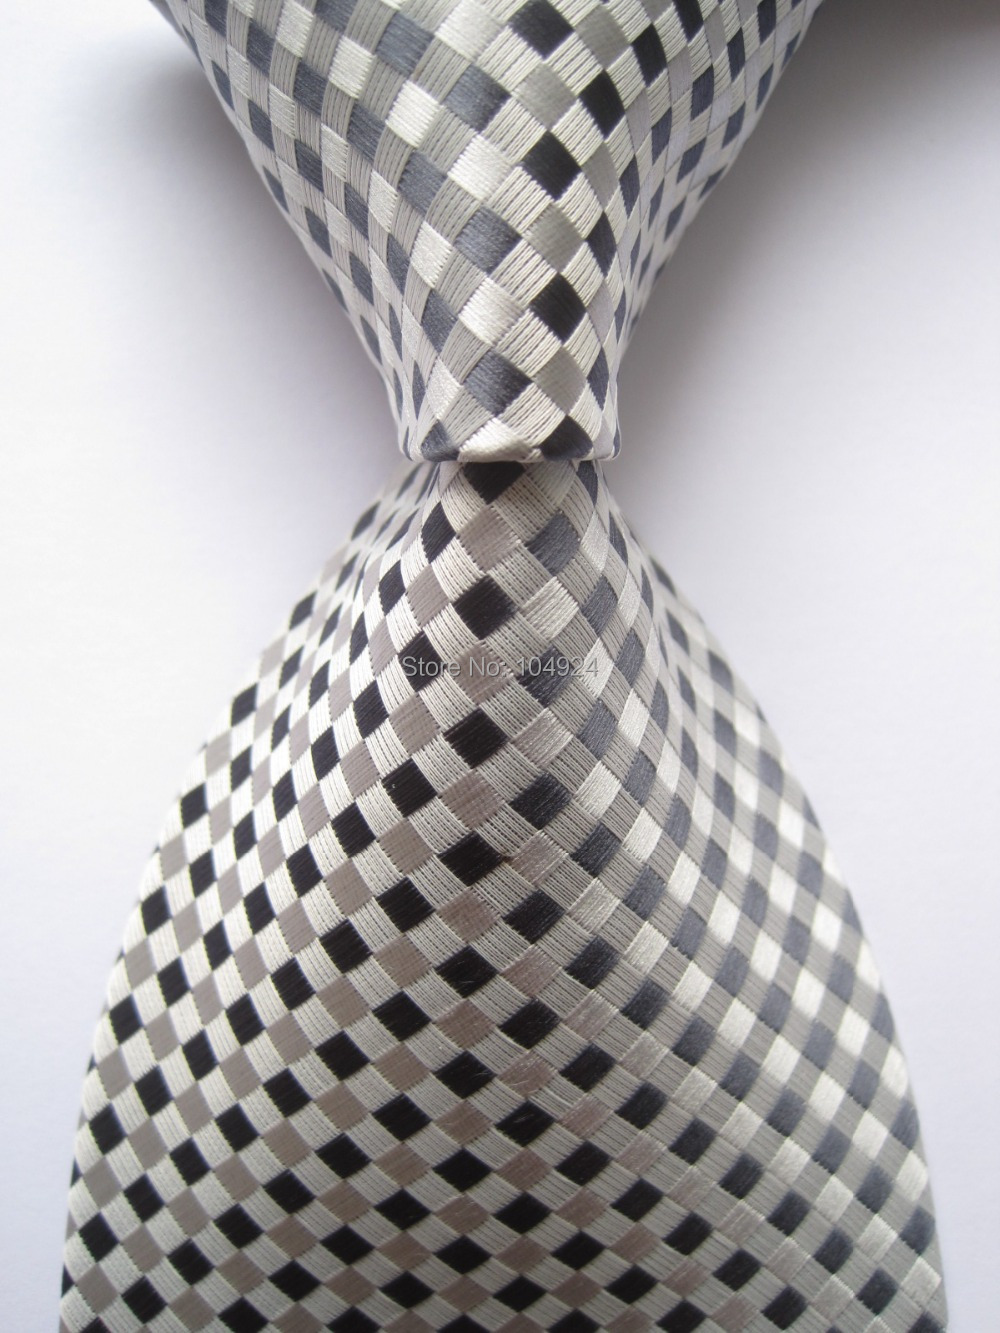 New Classic Plaid Gray JACQUARD WOVEN 100% Silk Men's Tie Necktie A098(China (Mainland))